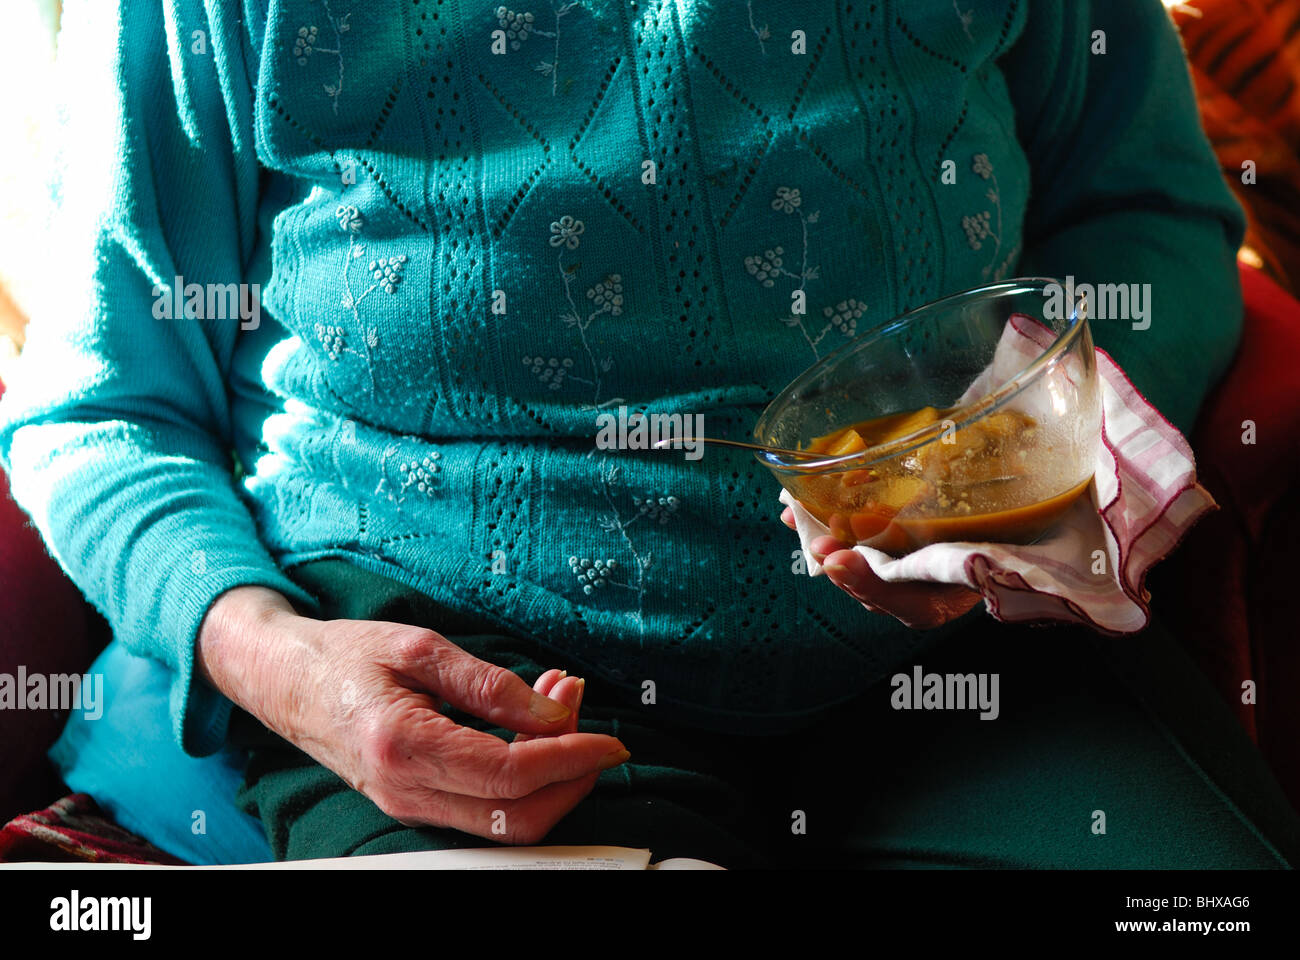 Woman Senior Eating Soup Stock Photos & Woman Senior Eating Soup ...